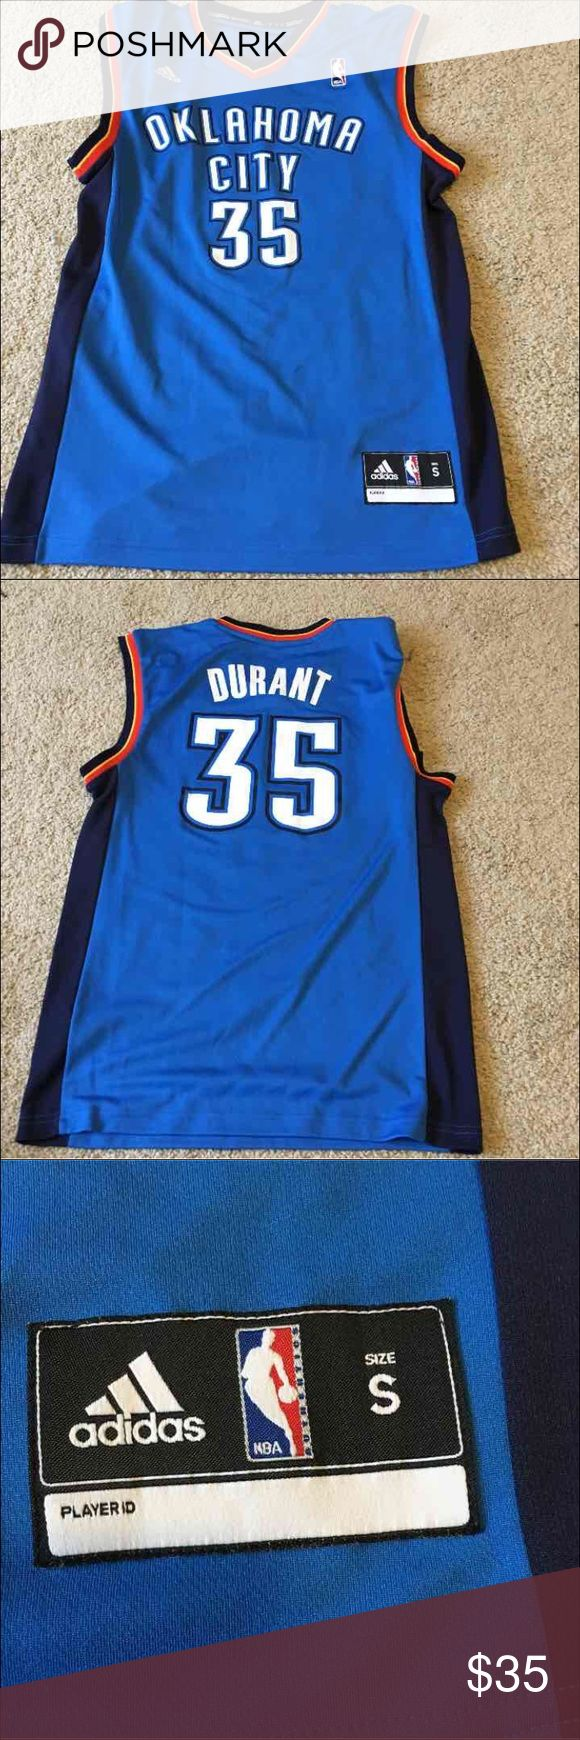 OKC Kevin Durant Jersey New jersey without tags. Smoke free hone with a hypo-allergenic dog. All items are washed before shipment.   Size: Mens small Adidas Shirts